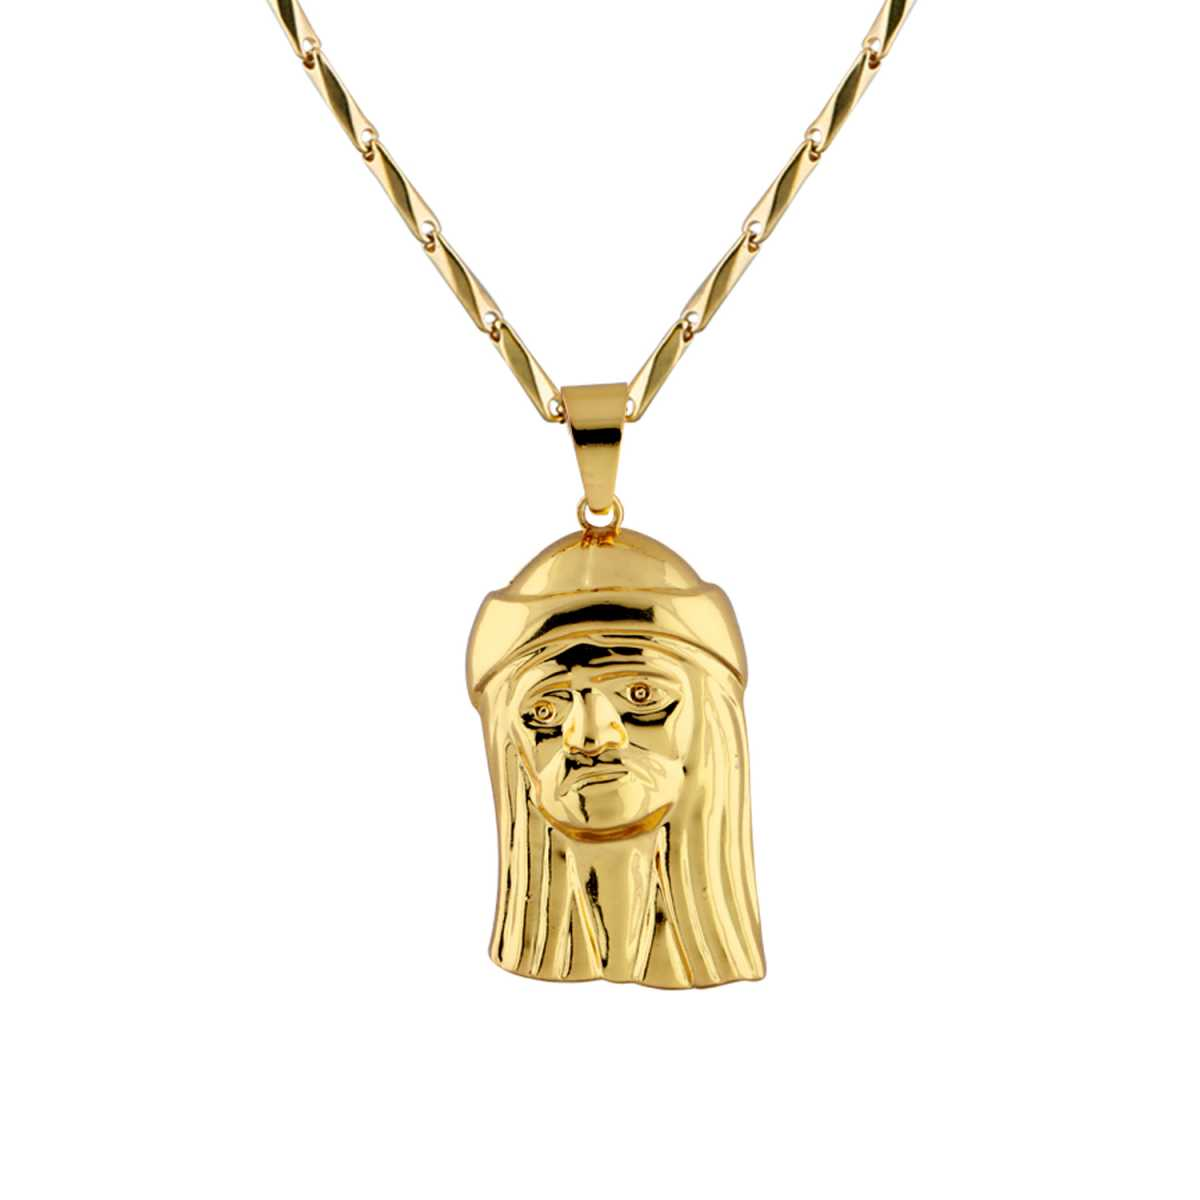 Goldplated Gorgeous Chain With Pendant For Men and boy Jewellery